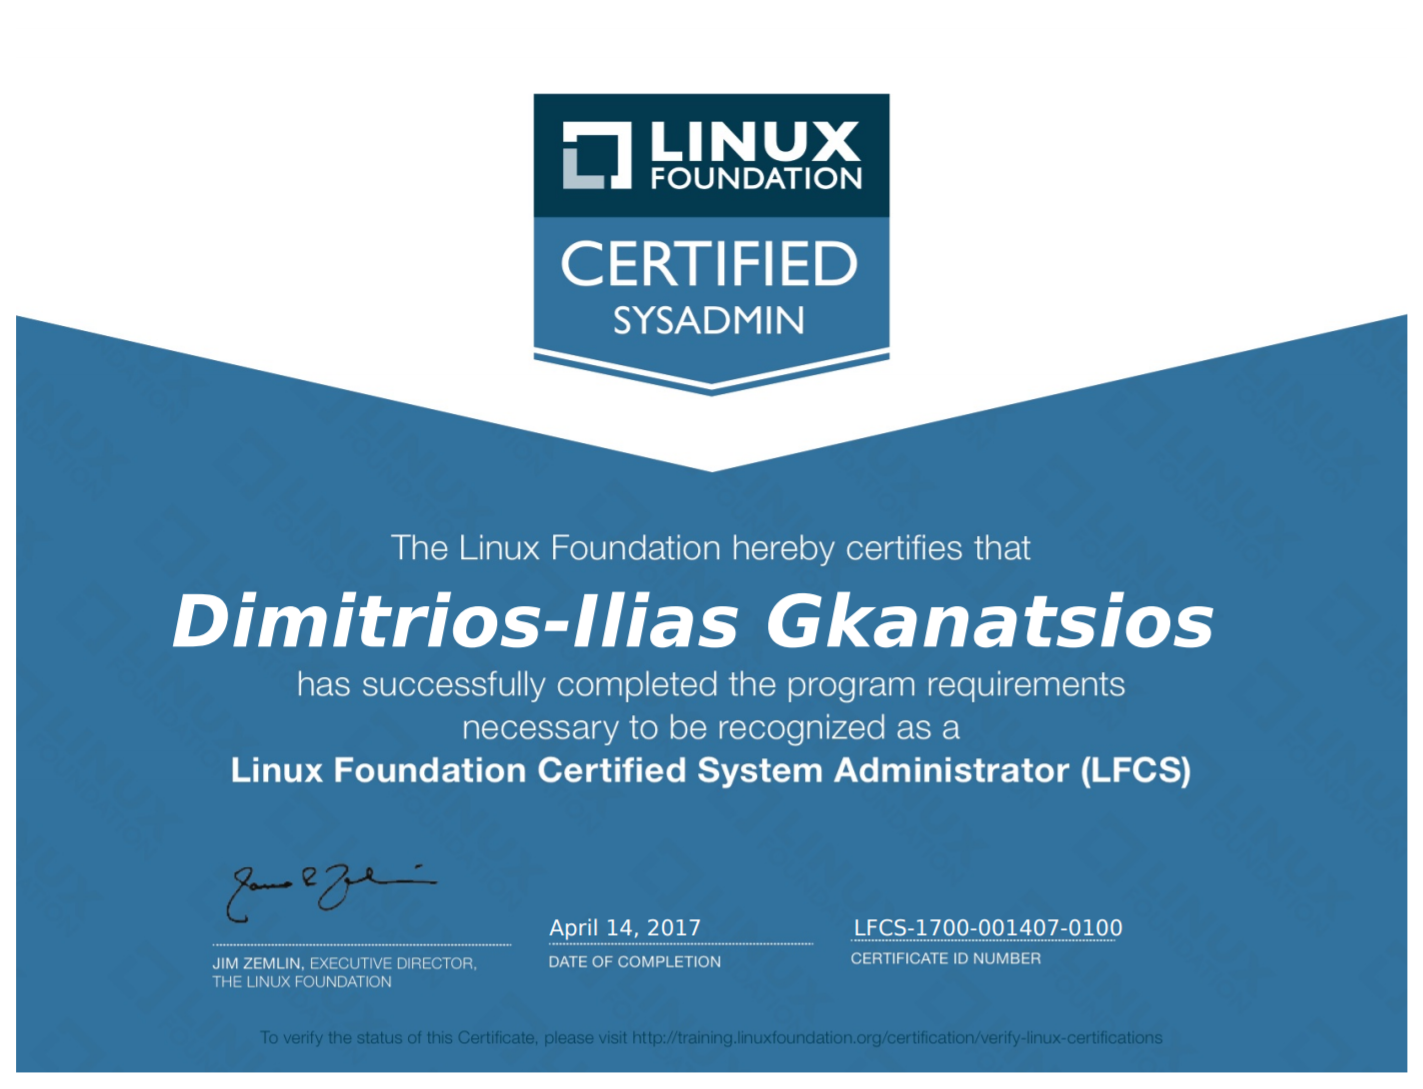 Getting Certified As A Linux Certified System Administrator